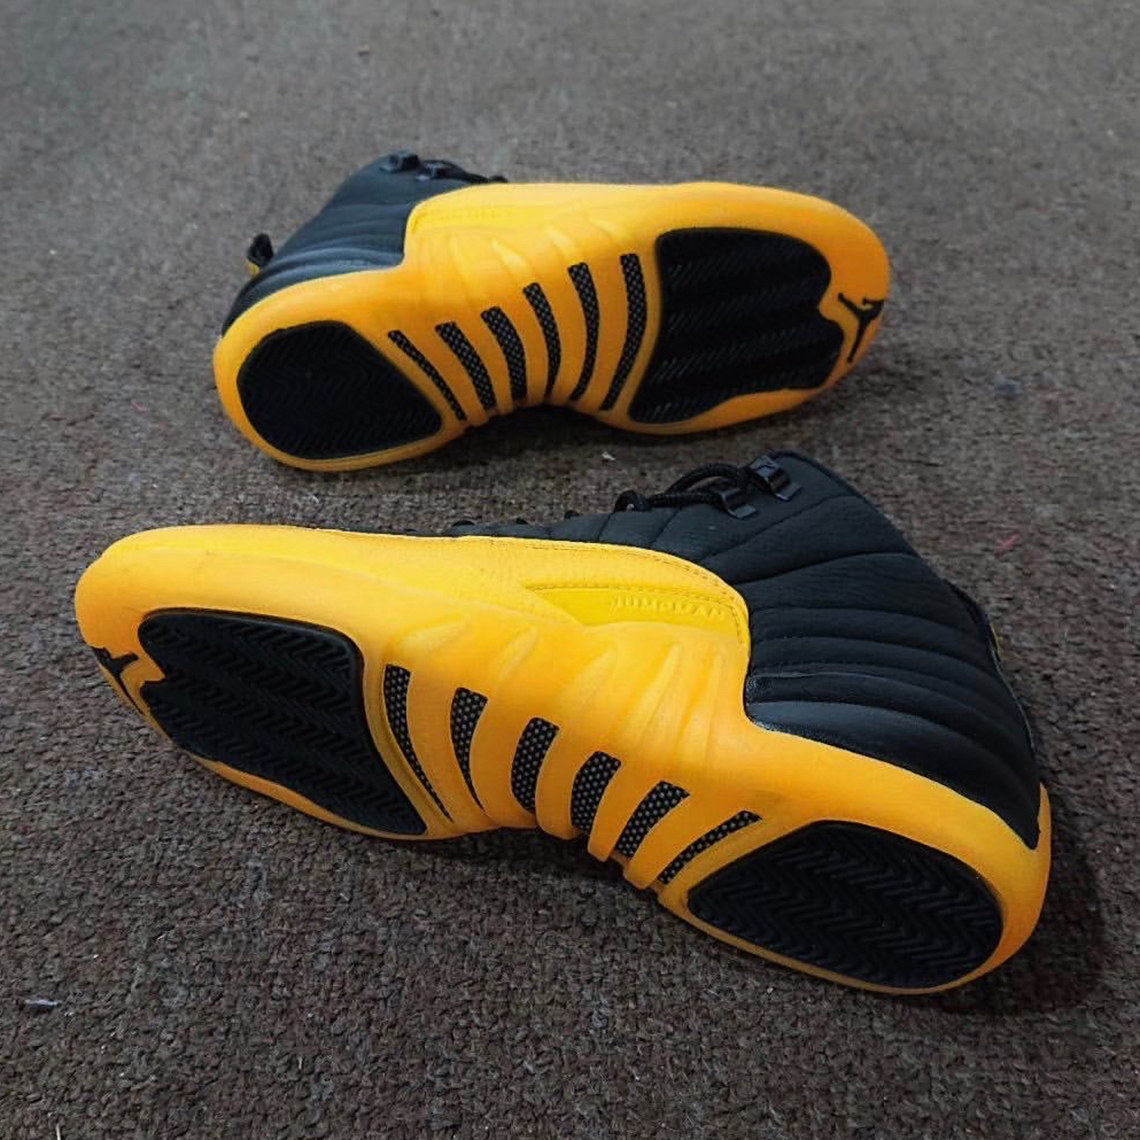 Air Jordan 12 Black University Gold Release Info Sneakernews Com